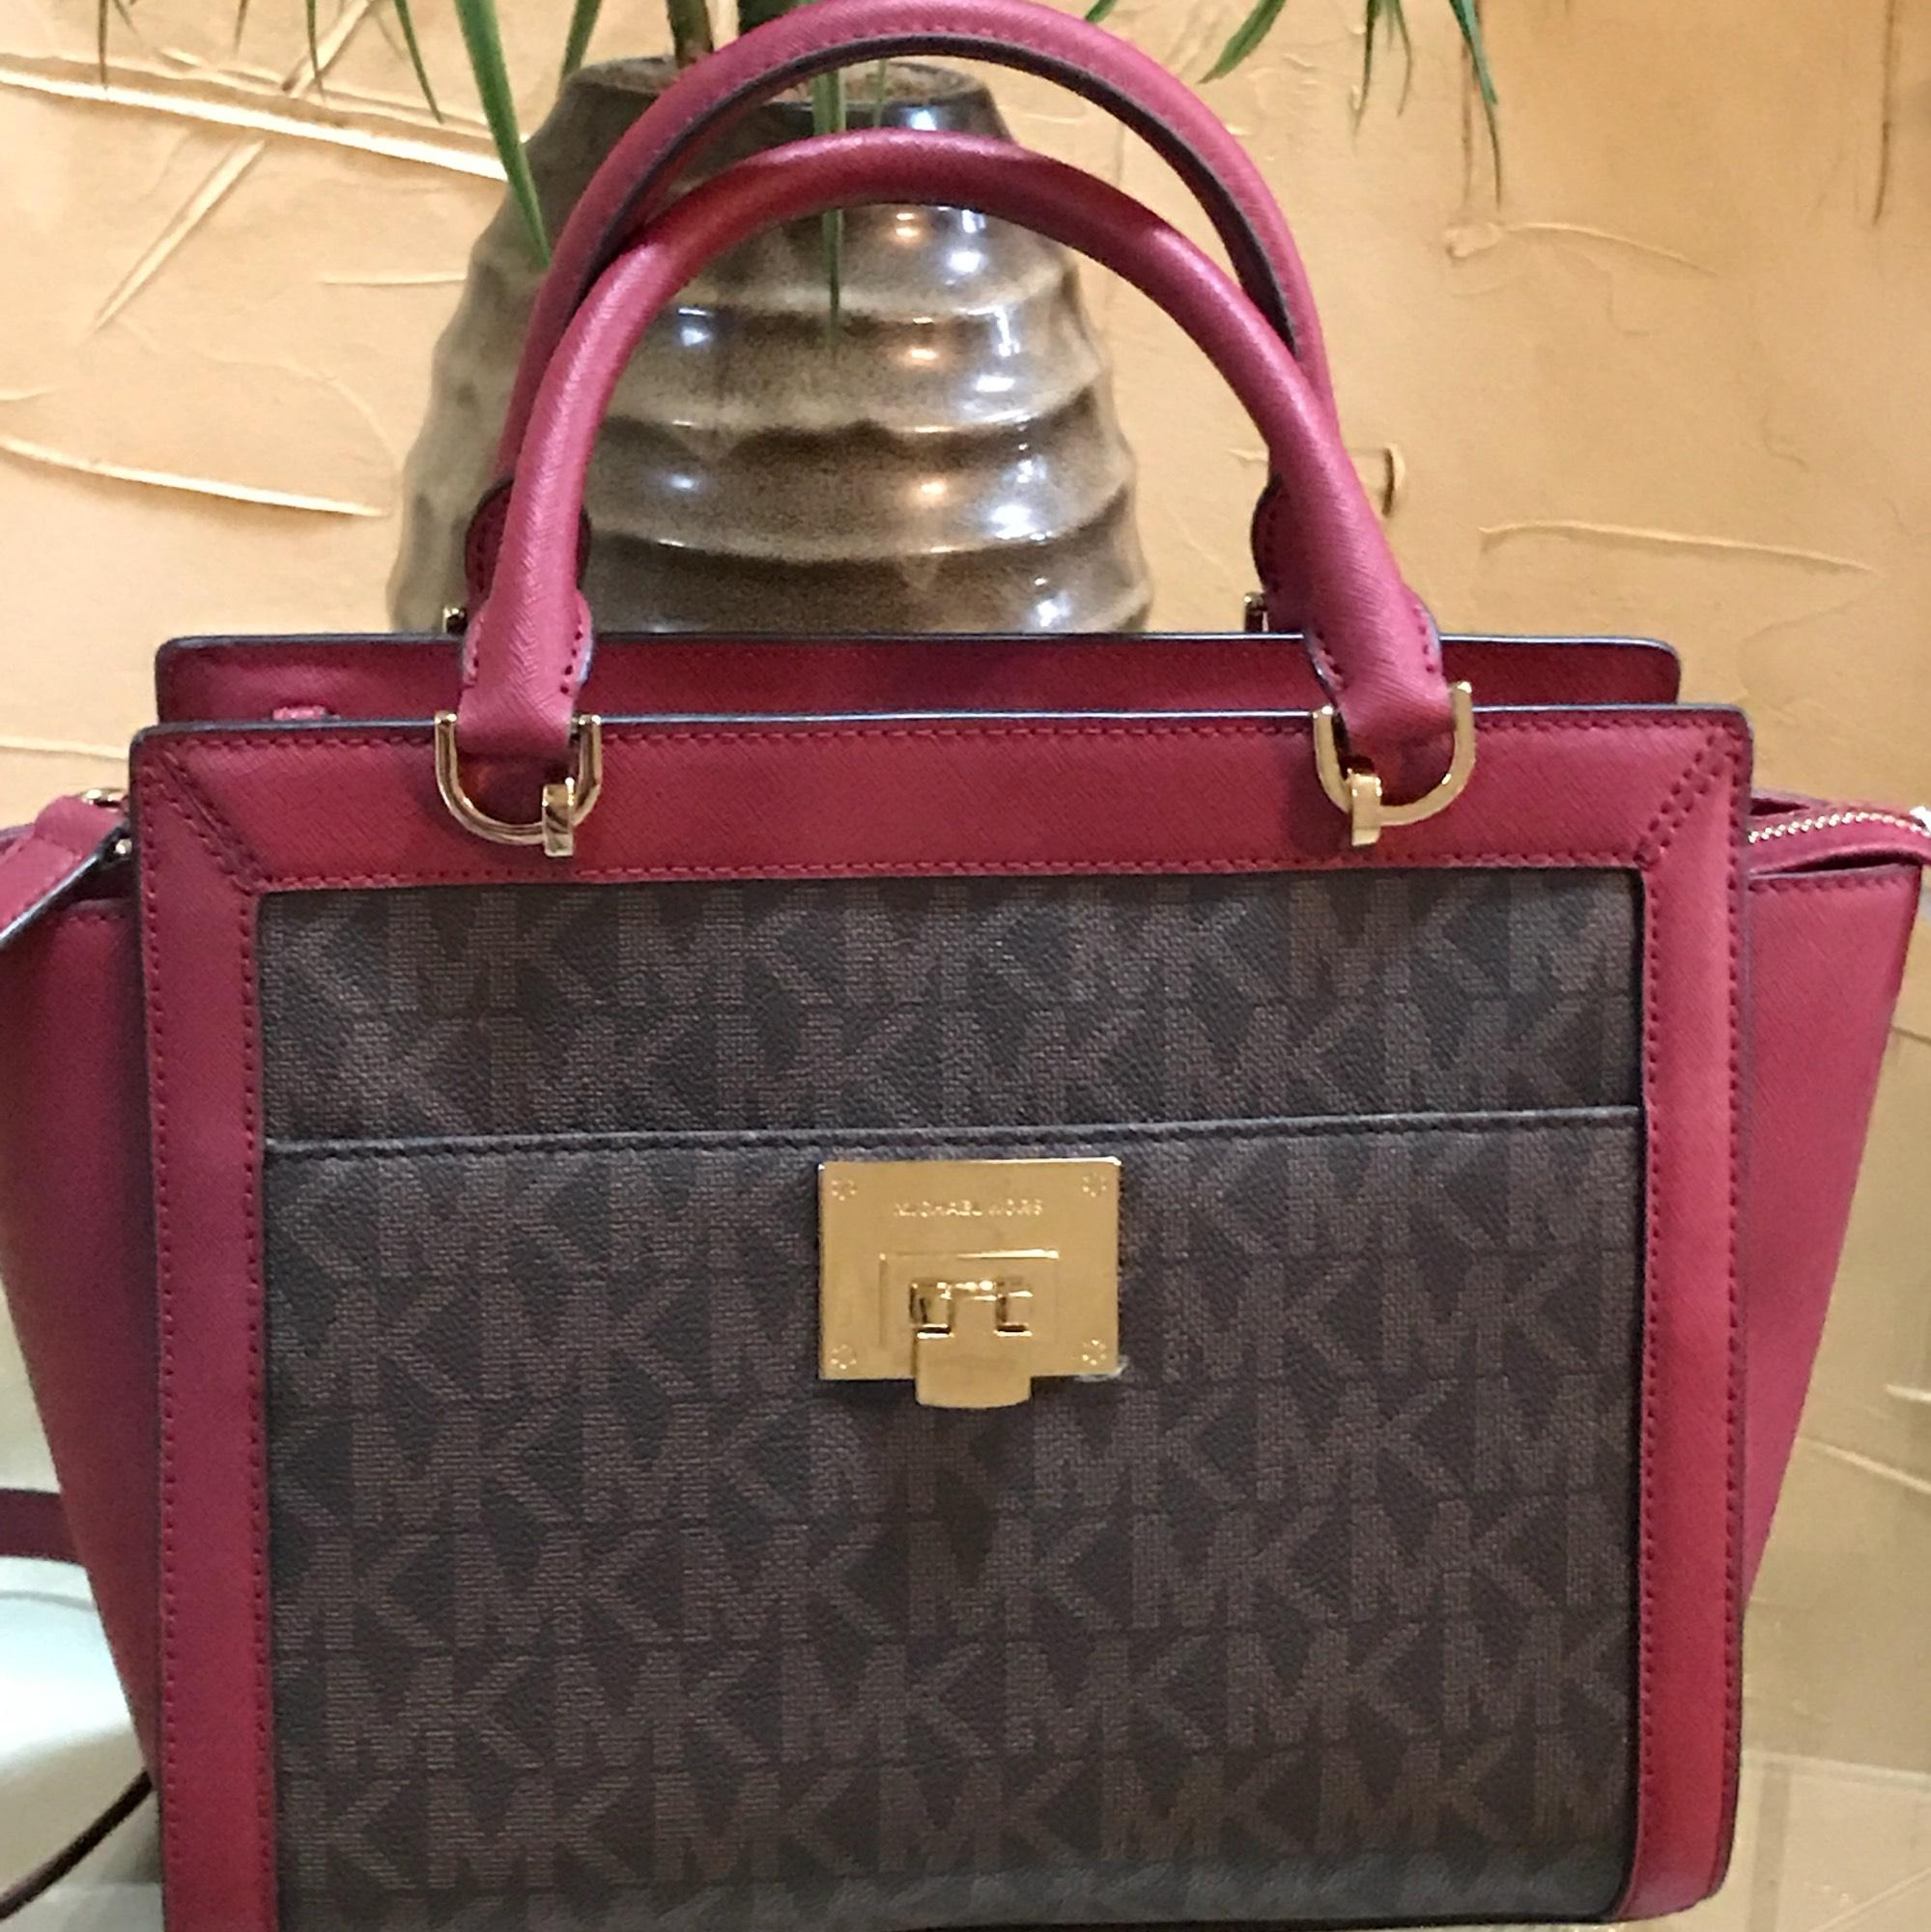 04b2b144b0cd shop michael kors tina large fulton wallet set brown cherry pvc with  saffiano leather satchel tradesy